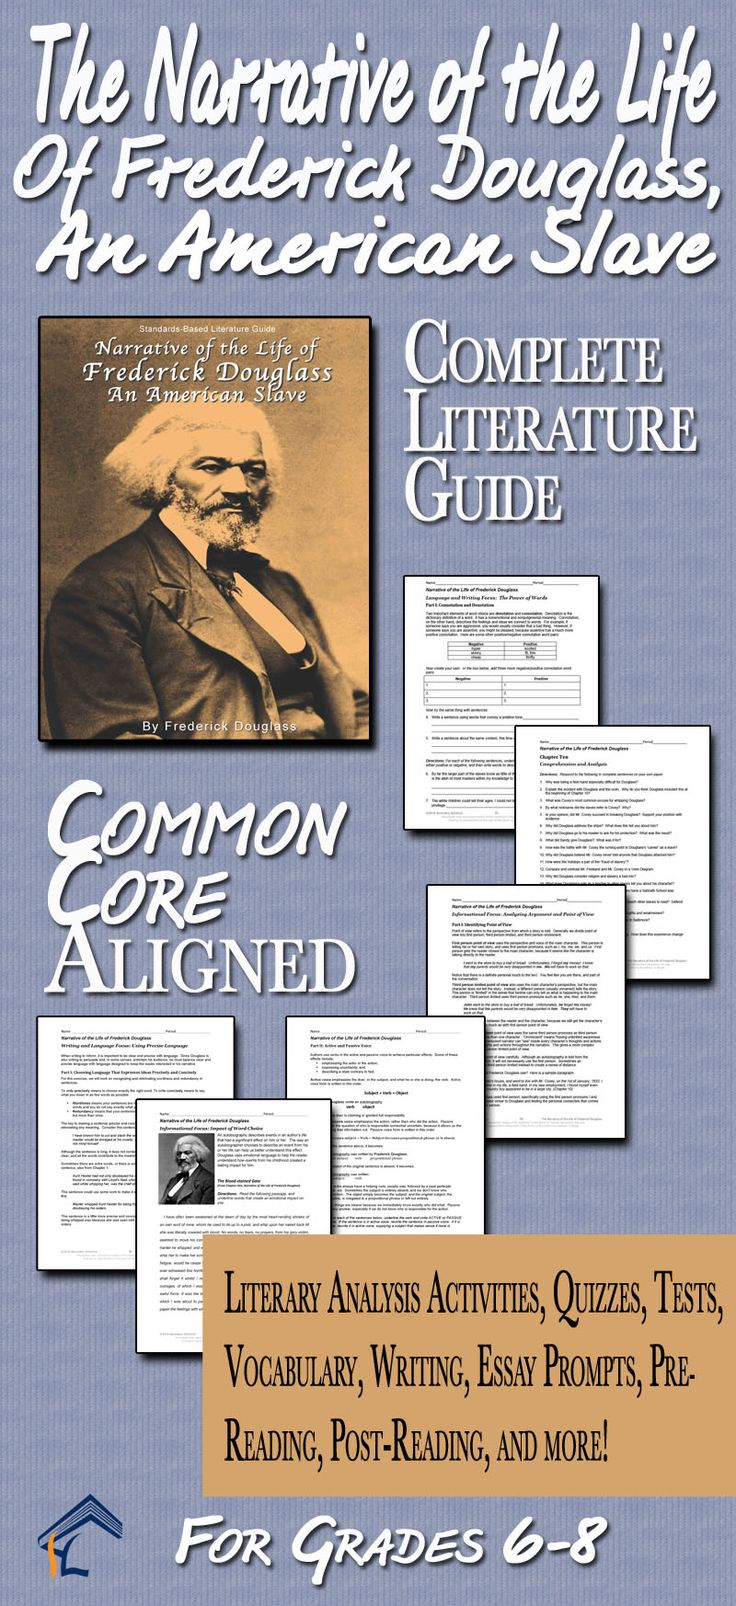 Narrative of Frederick Douglass Common Core Aligned Literature Guide for Grades 6-8 | Middle School English Language Arts